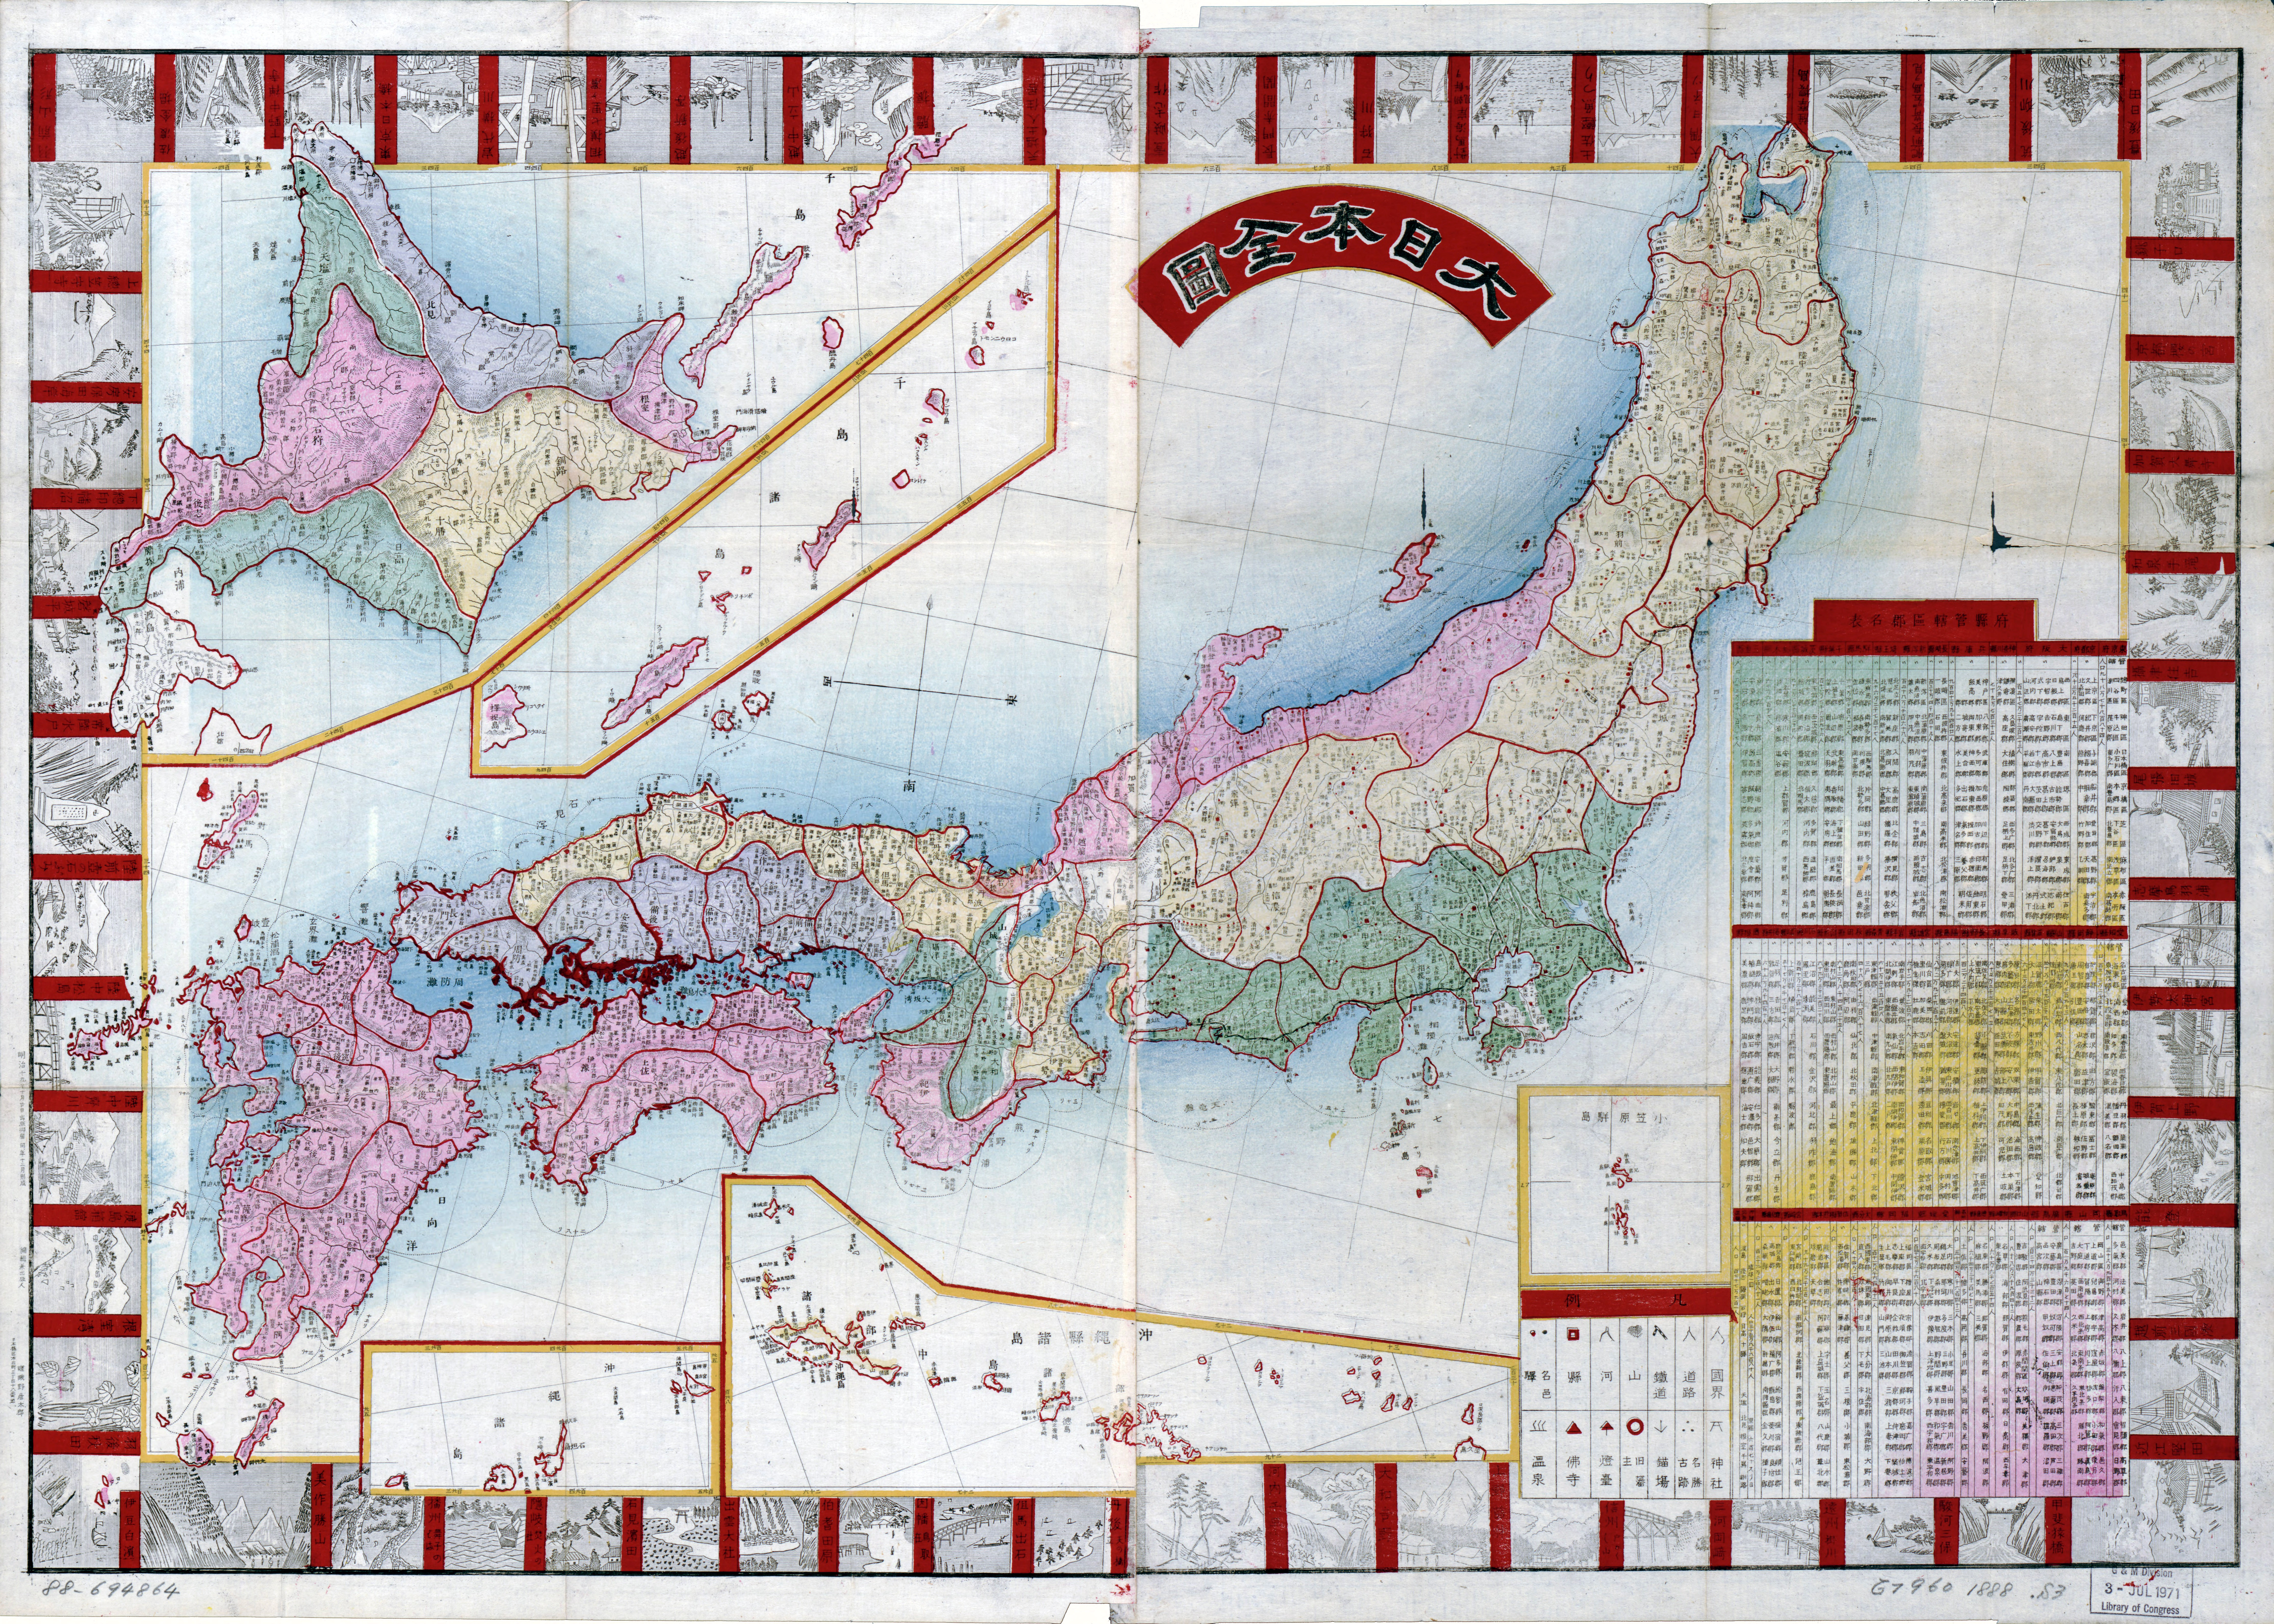 Large scale detailed old political and administrative map of Japan